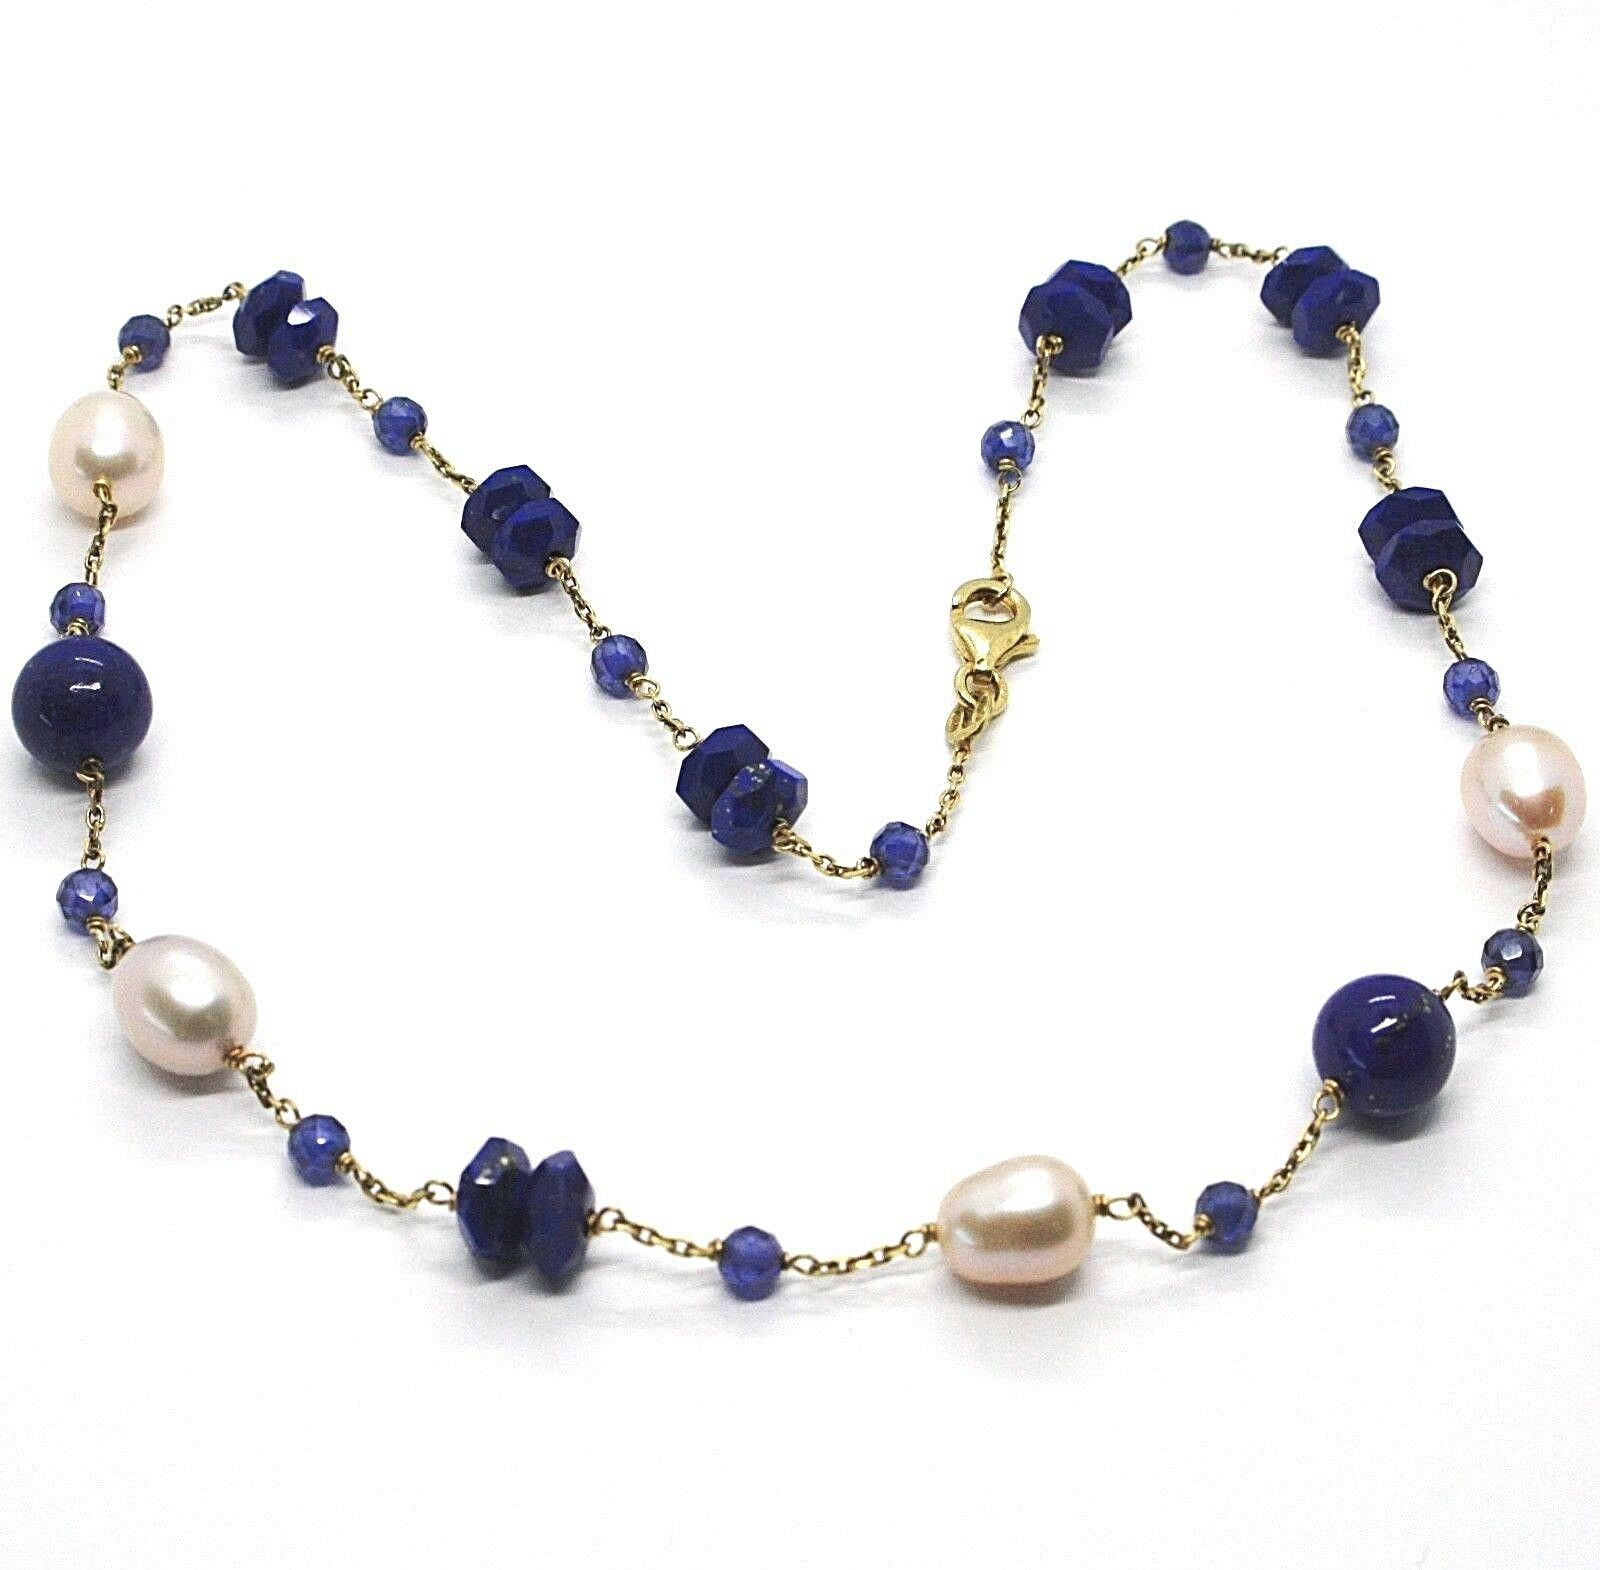 Silver 925 Necklace, Yellow, Blue Lapis Disc and Balls, Beads, 45 CM